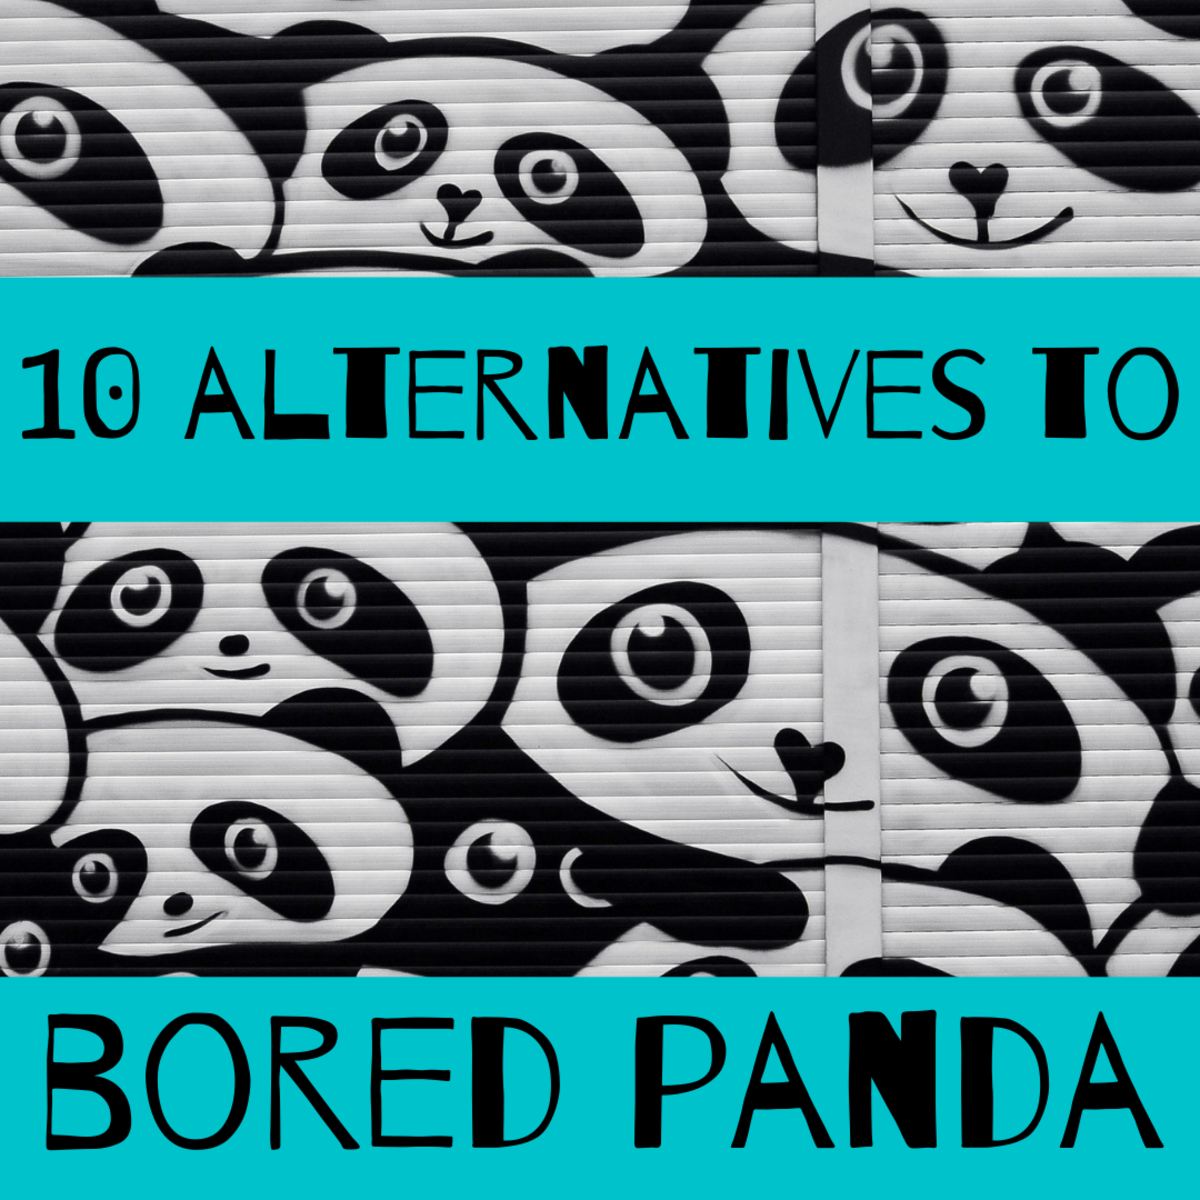 Find other great sites for wasting time and curing boredom.